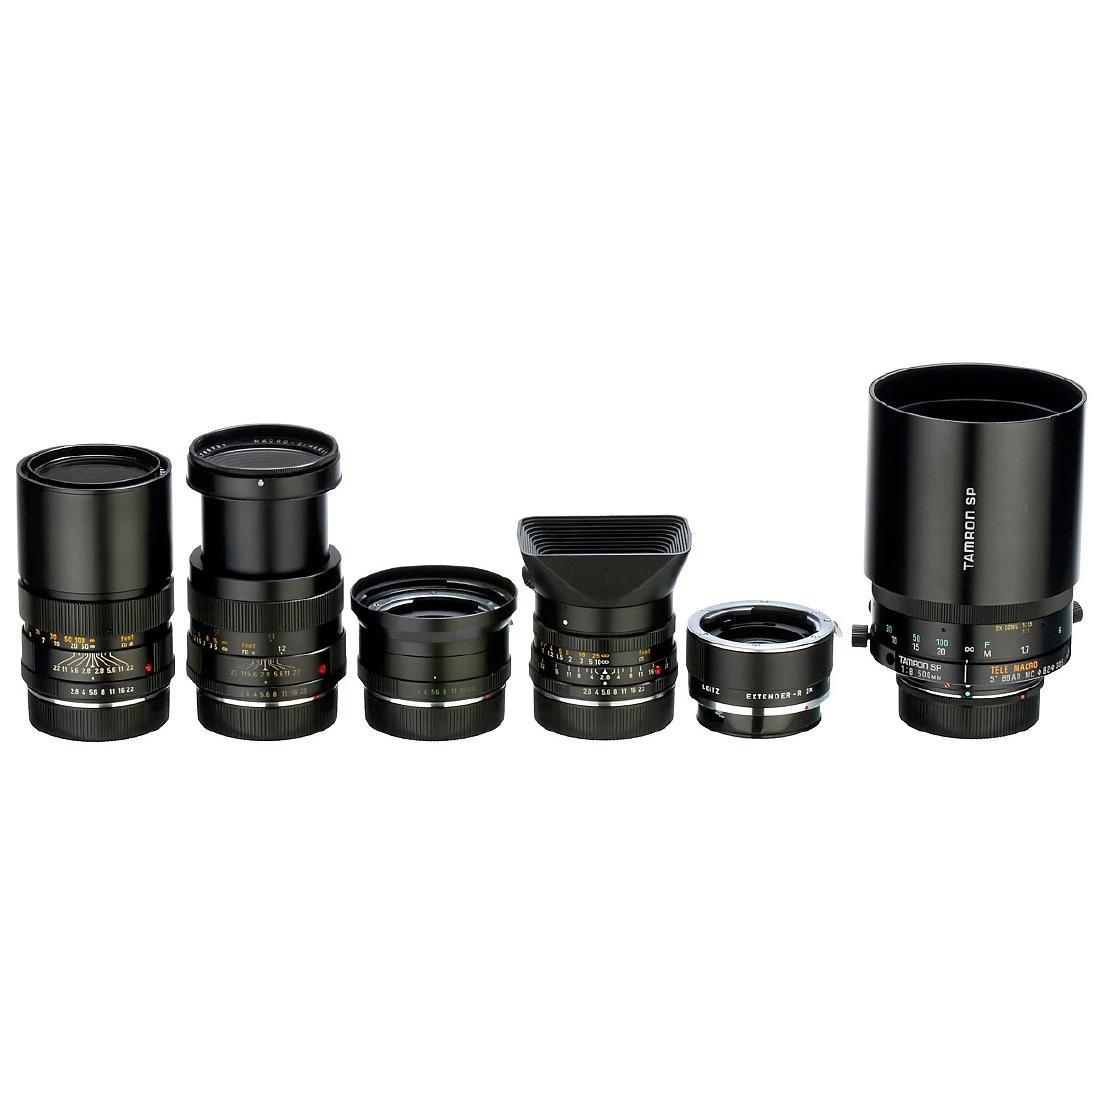 3 Leica R Lenses and more